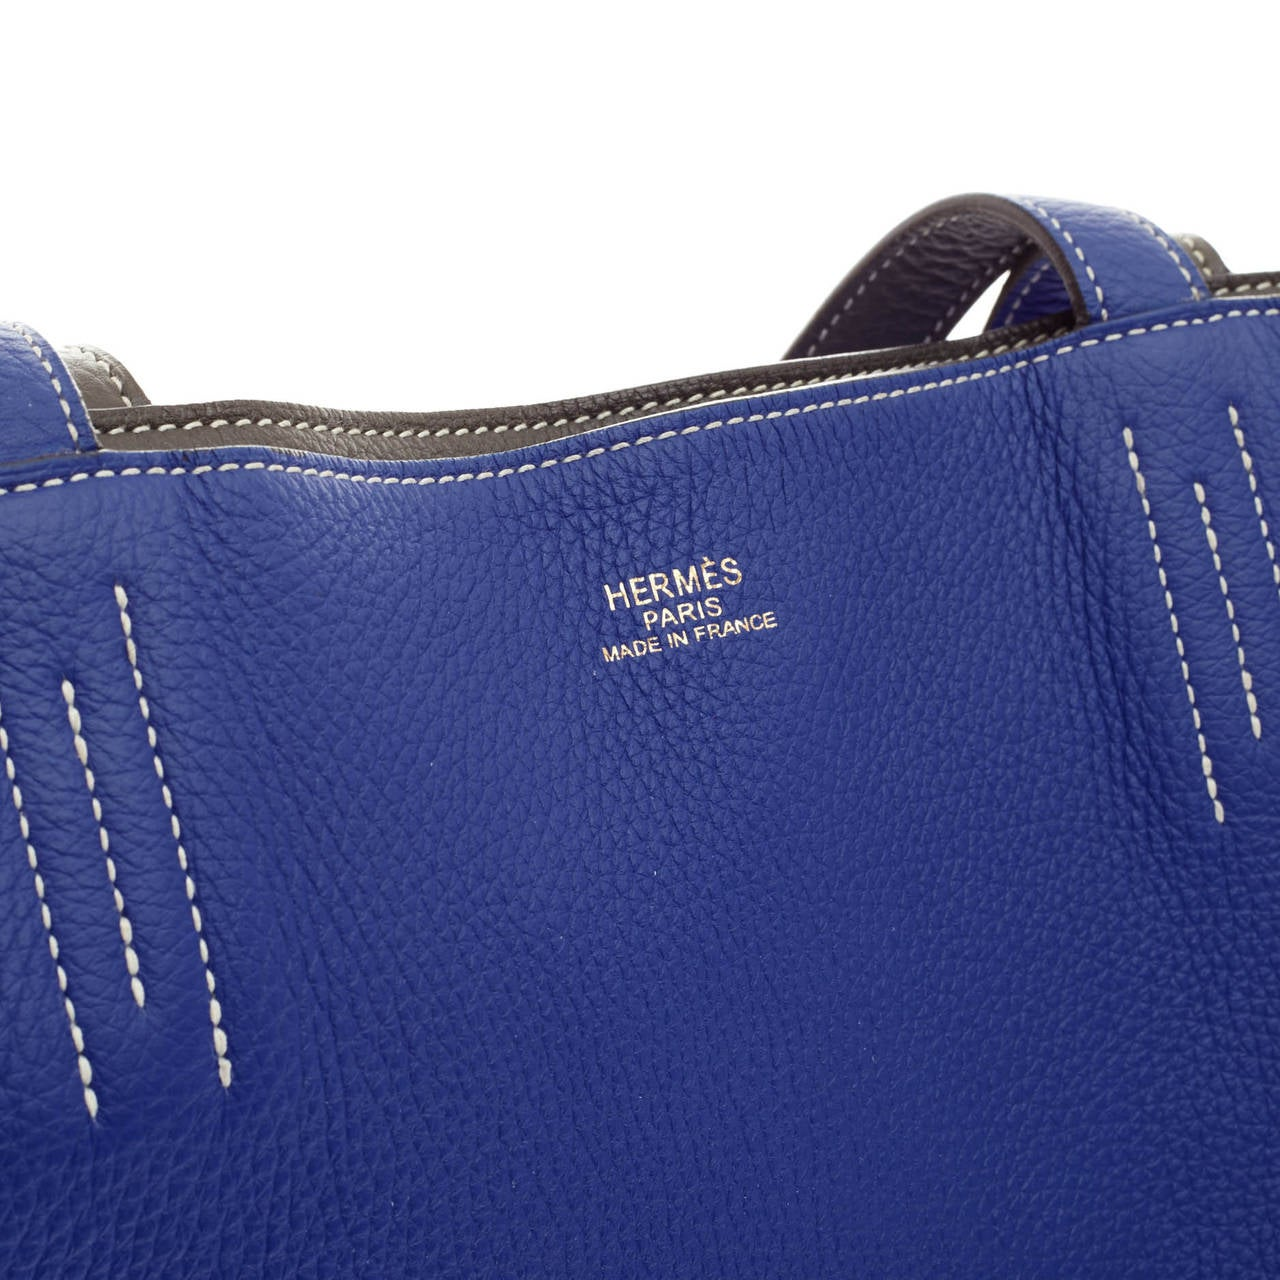 cheap hermes bags uk - hermes blue leather handbag double sens